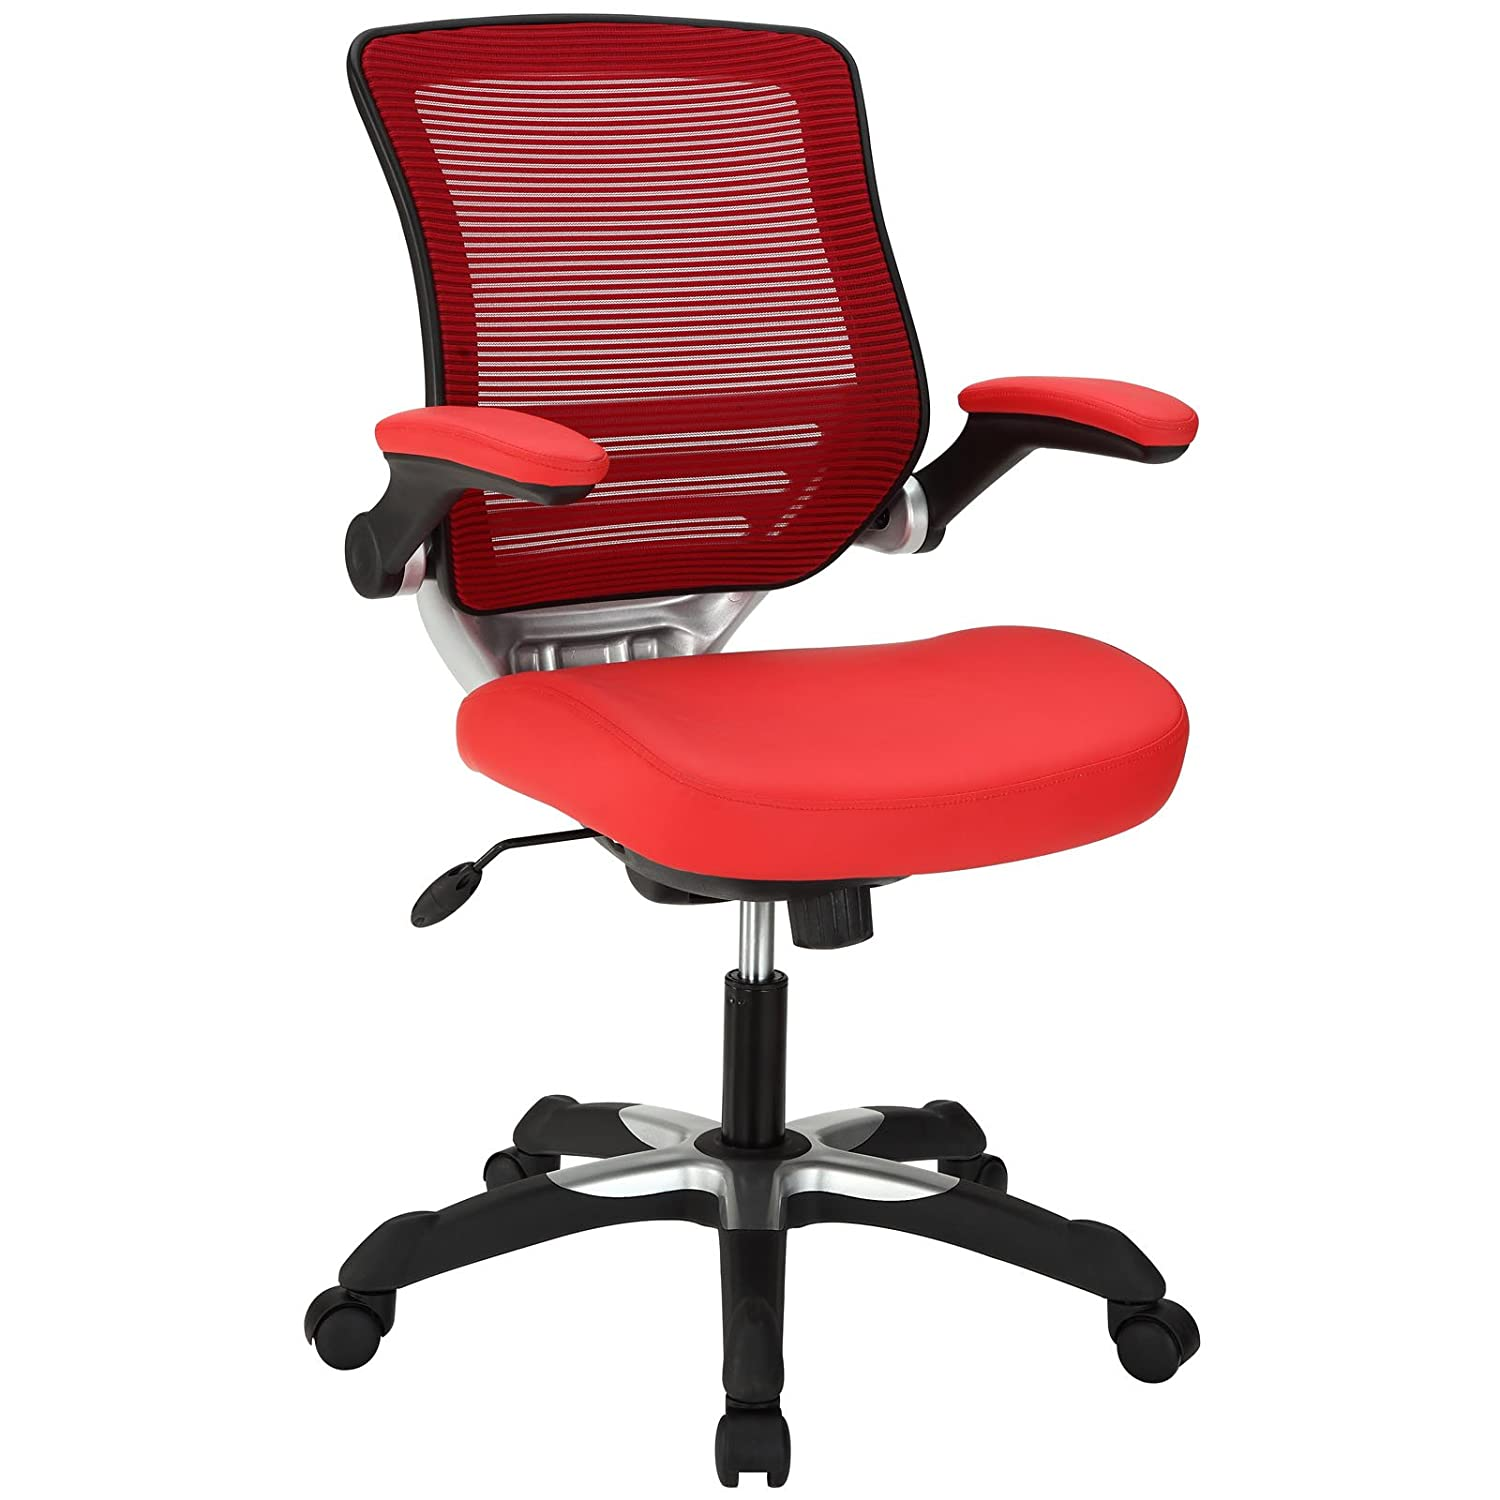 Amazon Modway Edge Mesh Back and Red Vinyl Seat fice Chair